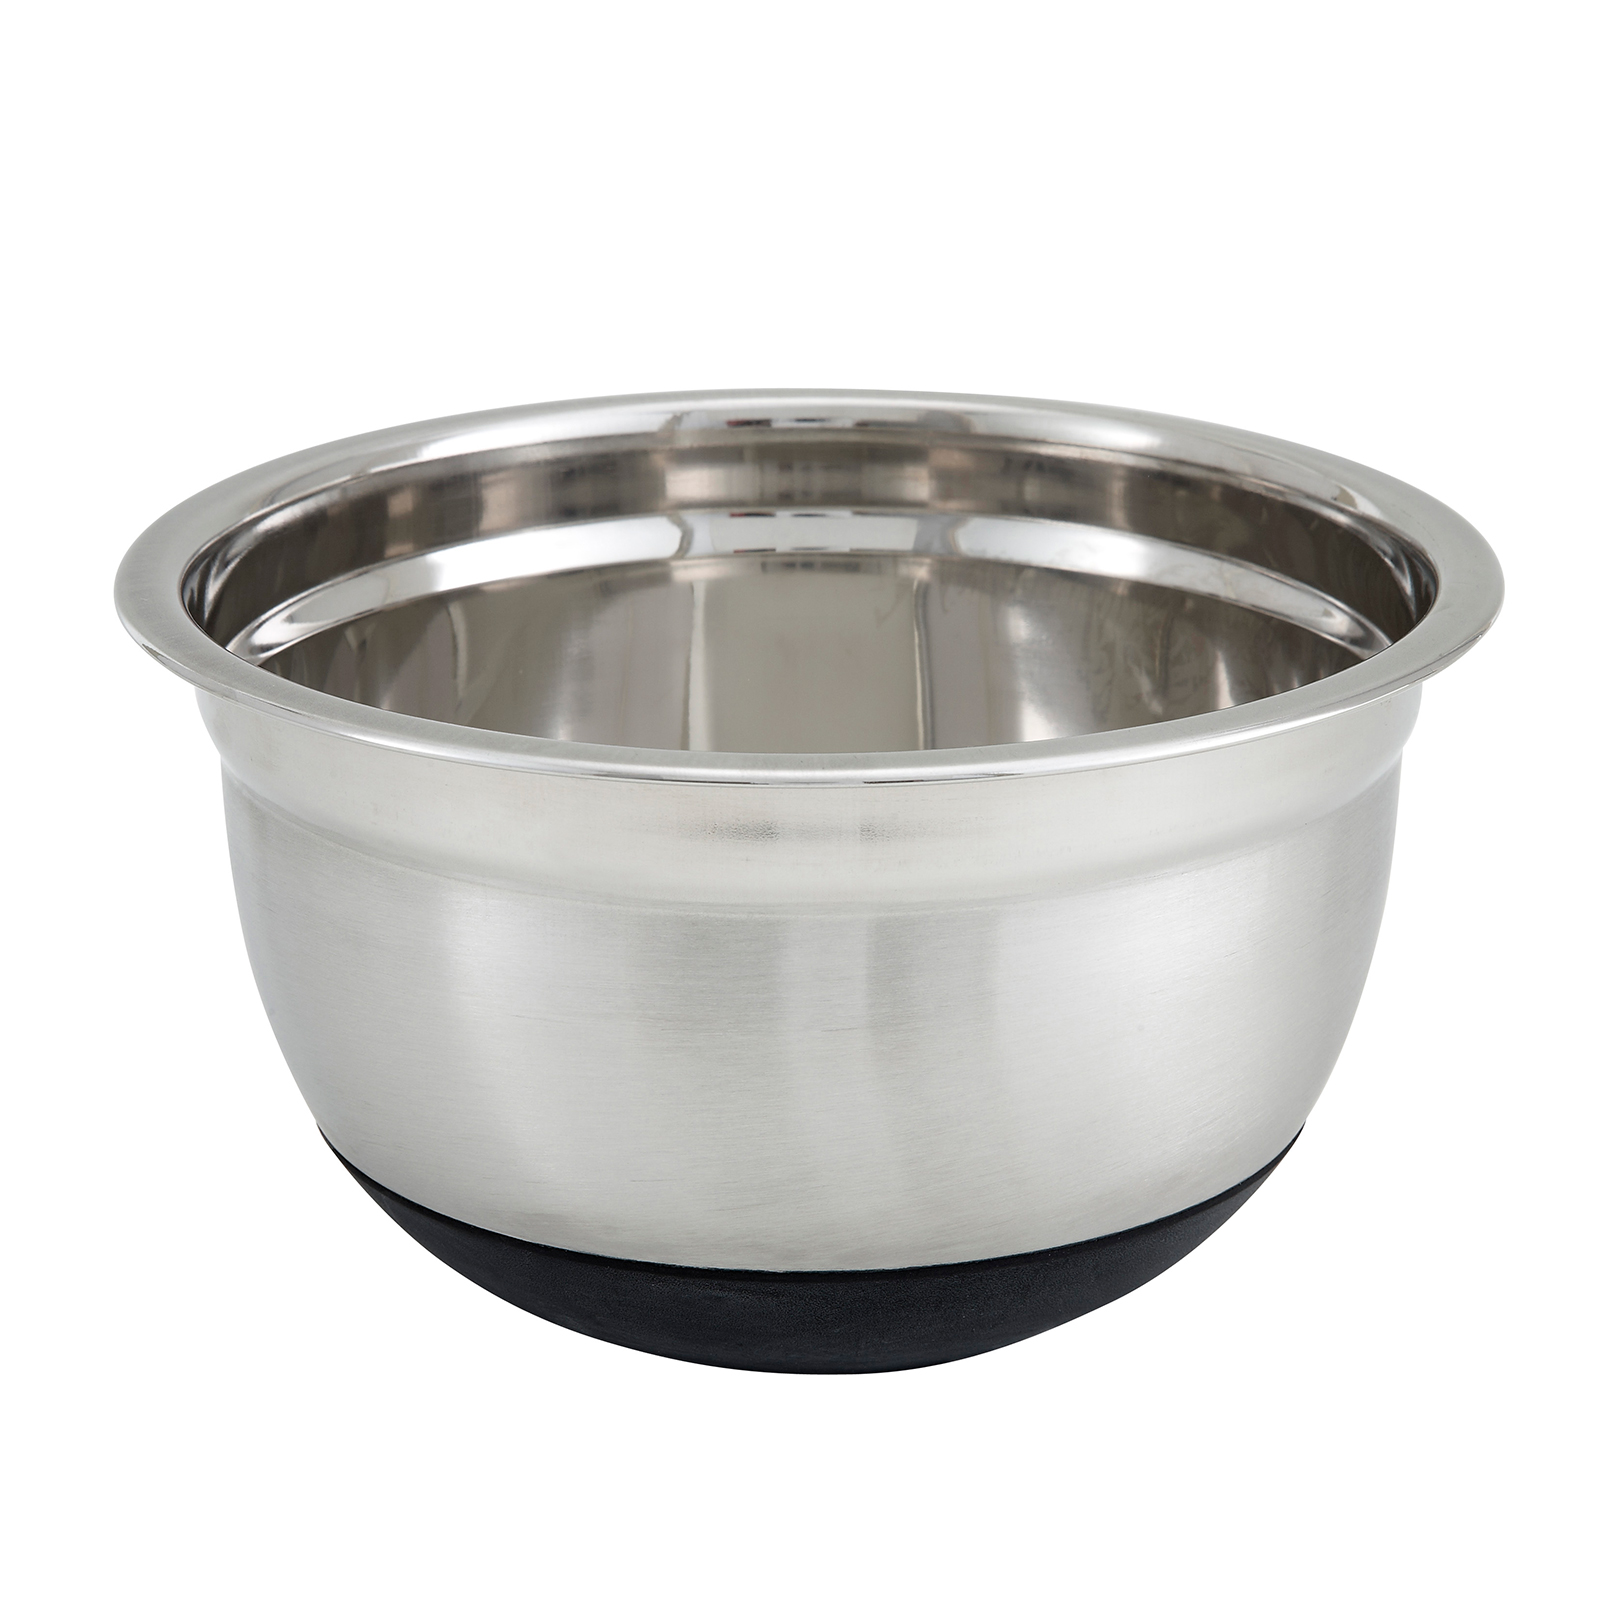 Winco MXRU-500 mixing bowl, metal